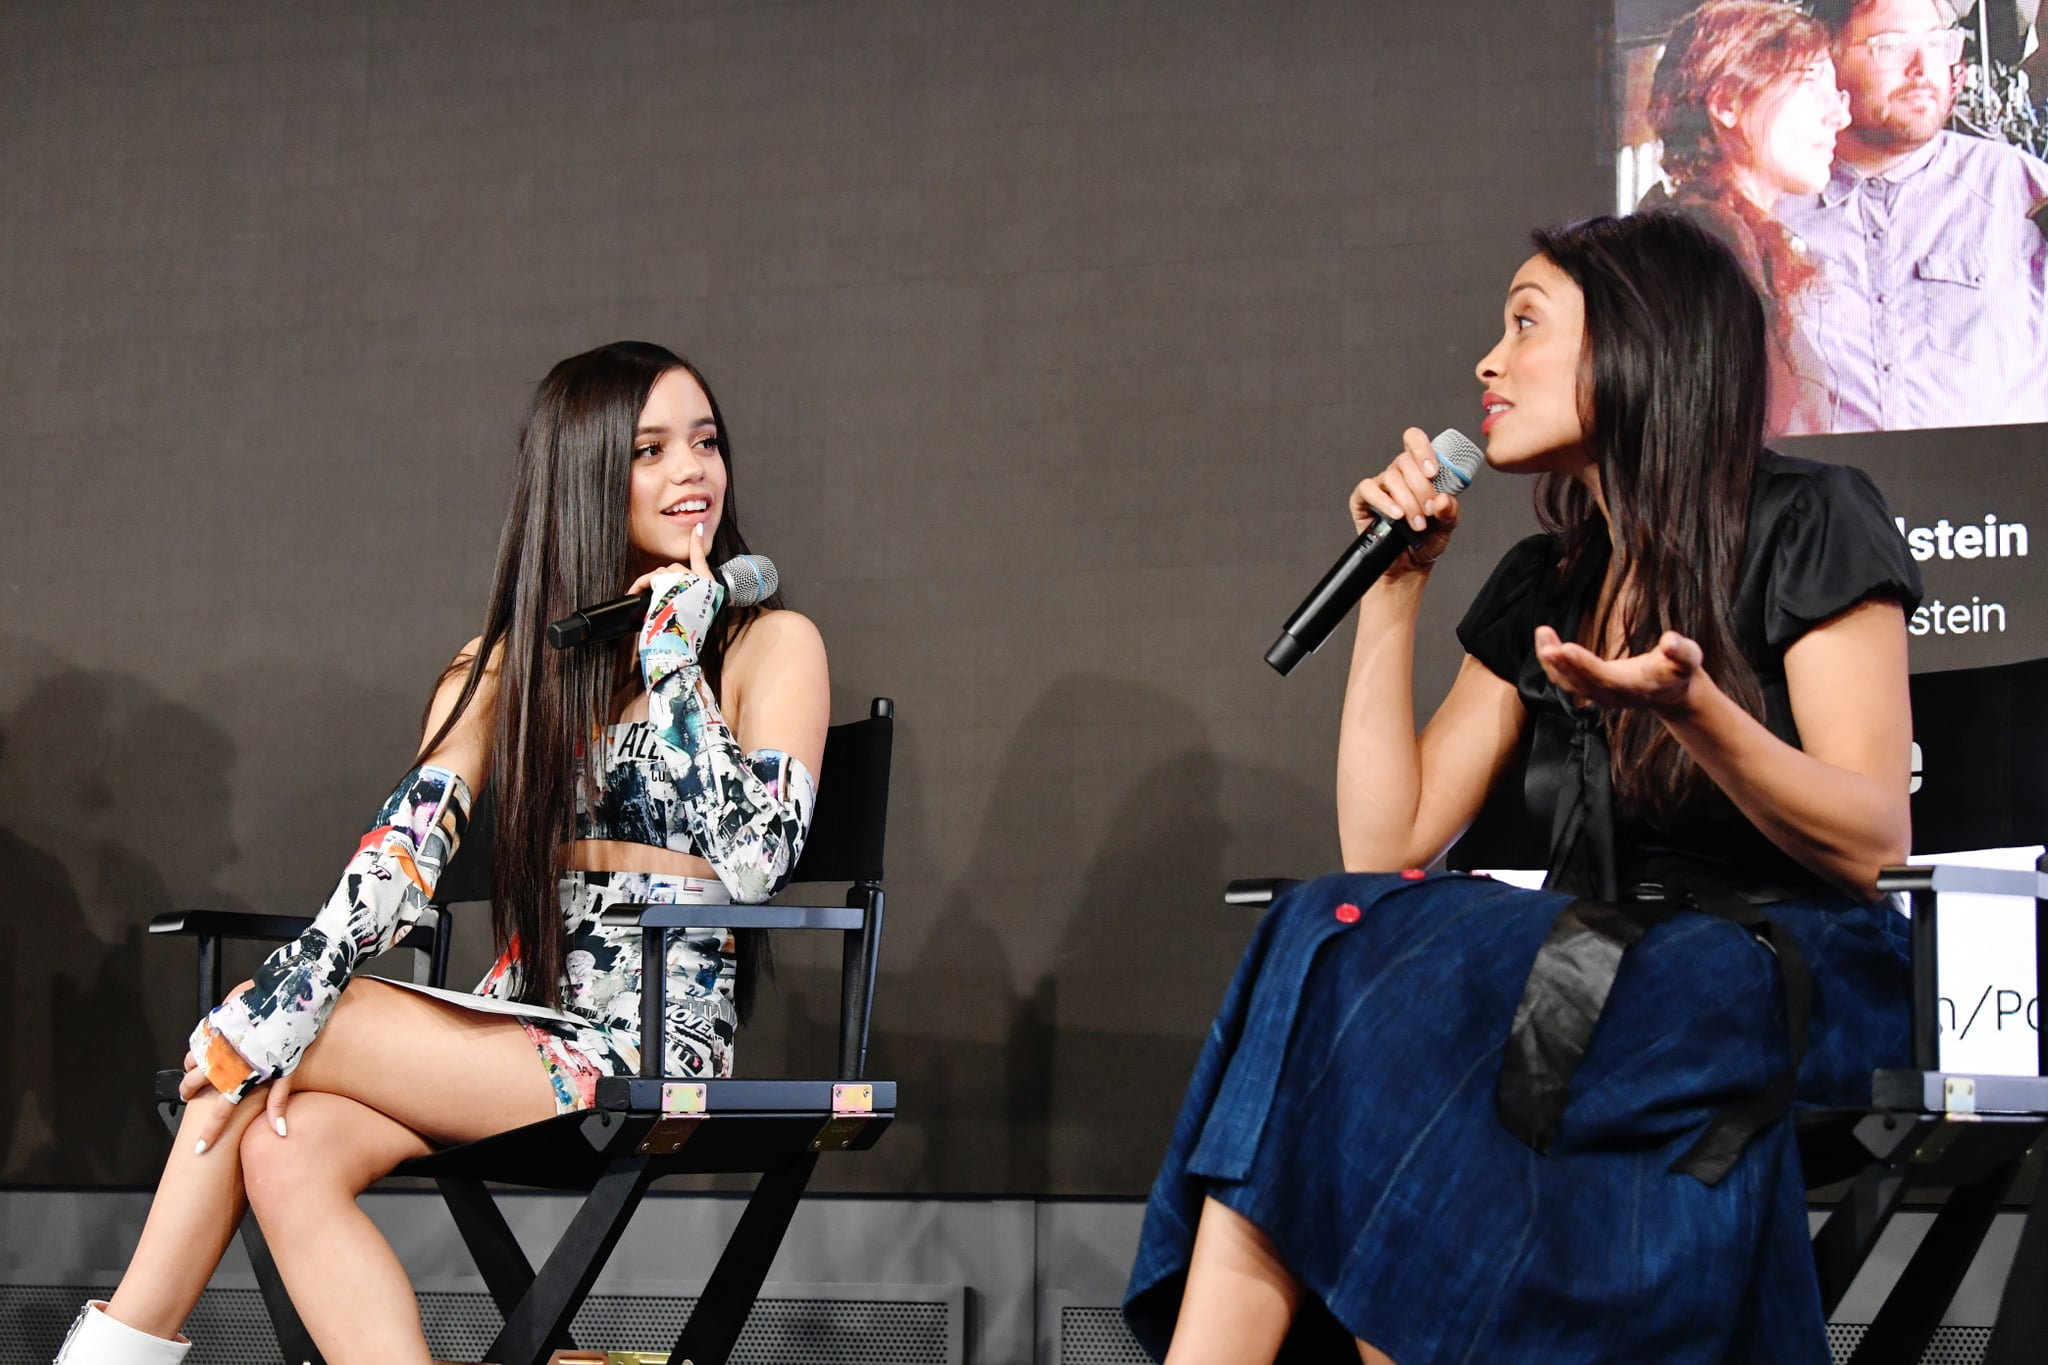 PLAYA VISTA, CALIFORNIA - APRIL 24: Jenna Ortega (L) and Rosario Dawson speak onstage during Power On Premiere By Straight Up Films With Support From YouTube at Google Playa Vista Office on April 24, 2019 in Playa Vista, California. (Photo by Emma McIntyre/Getty Images for YouTube)